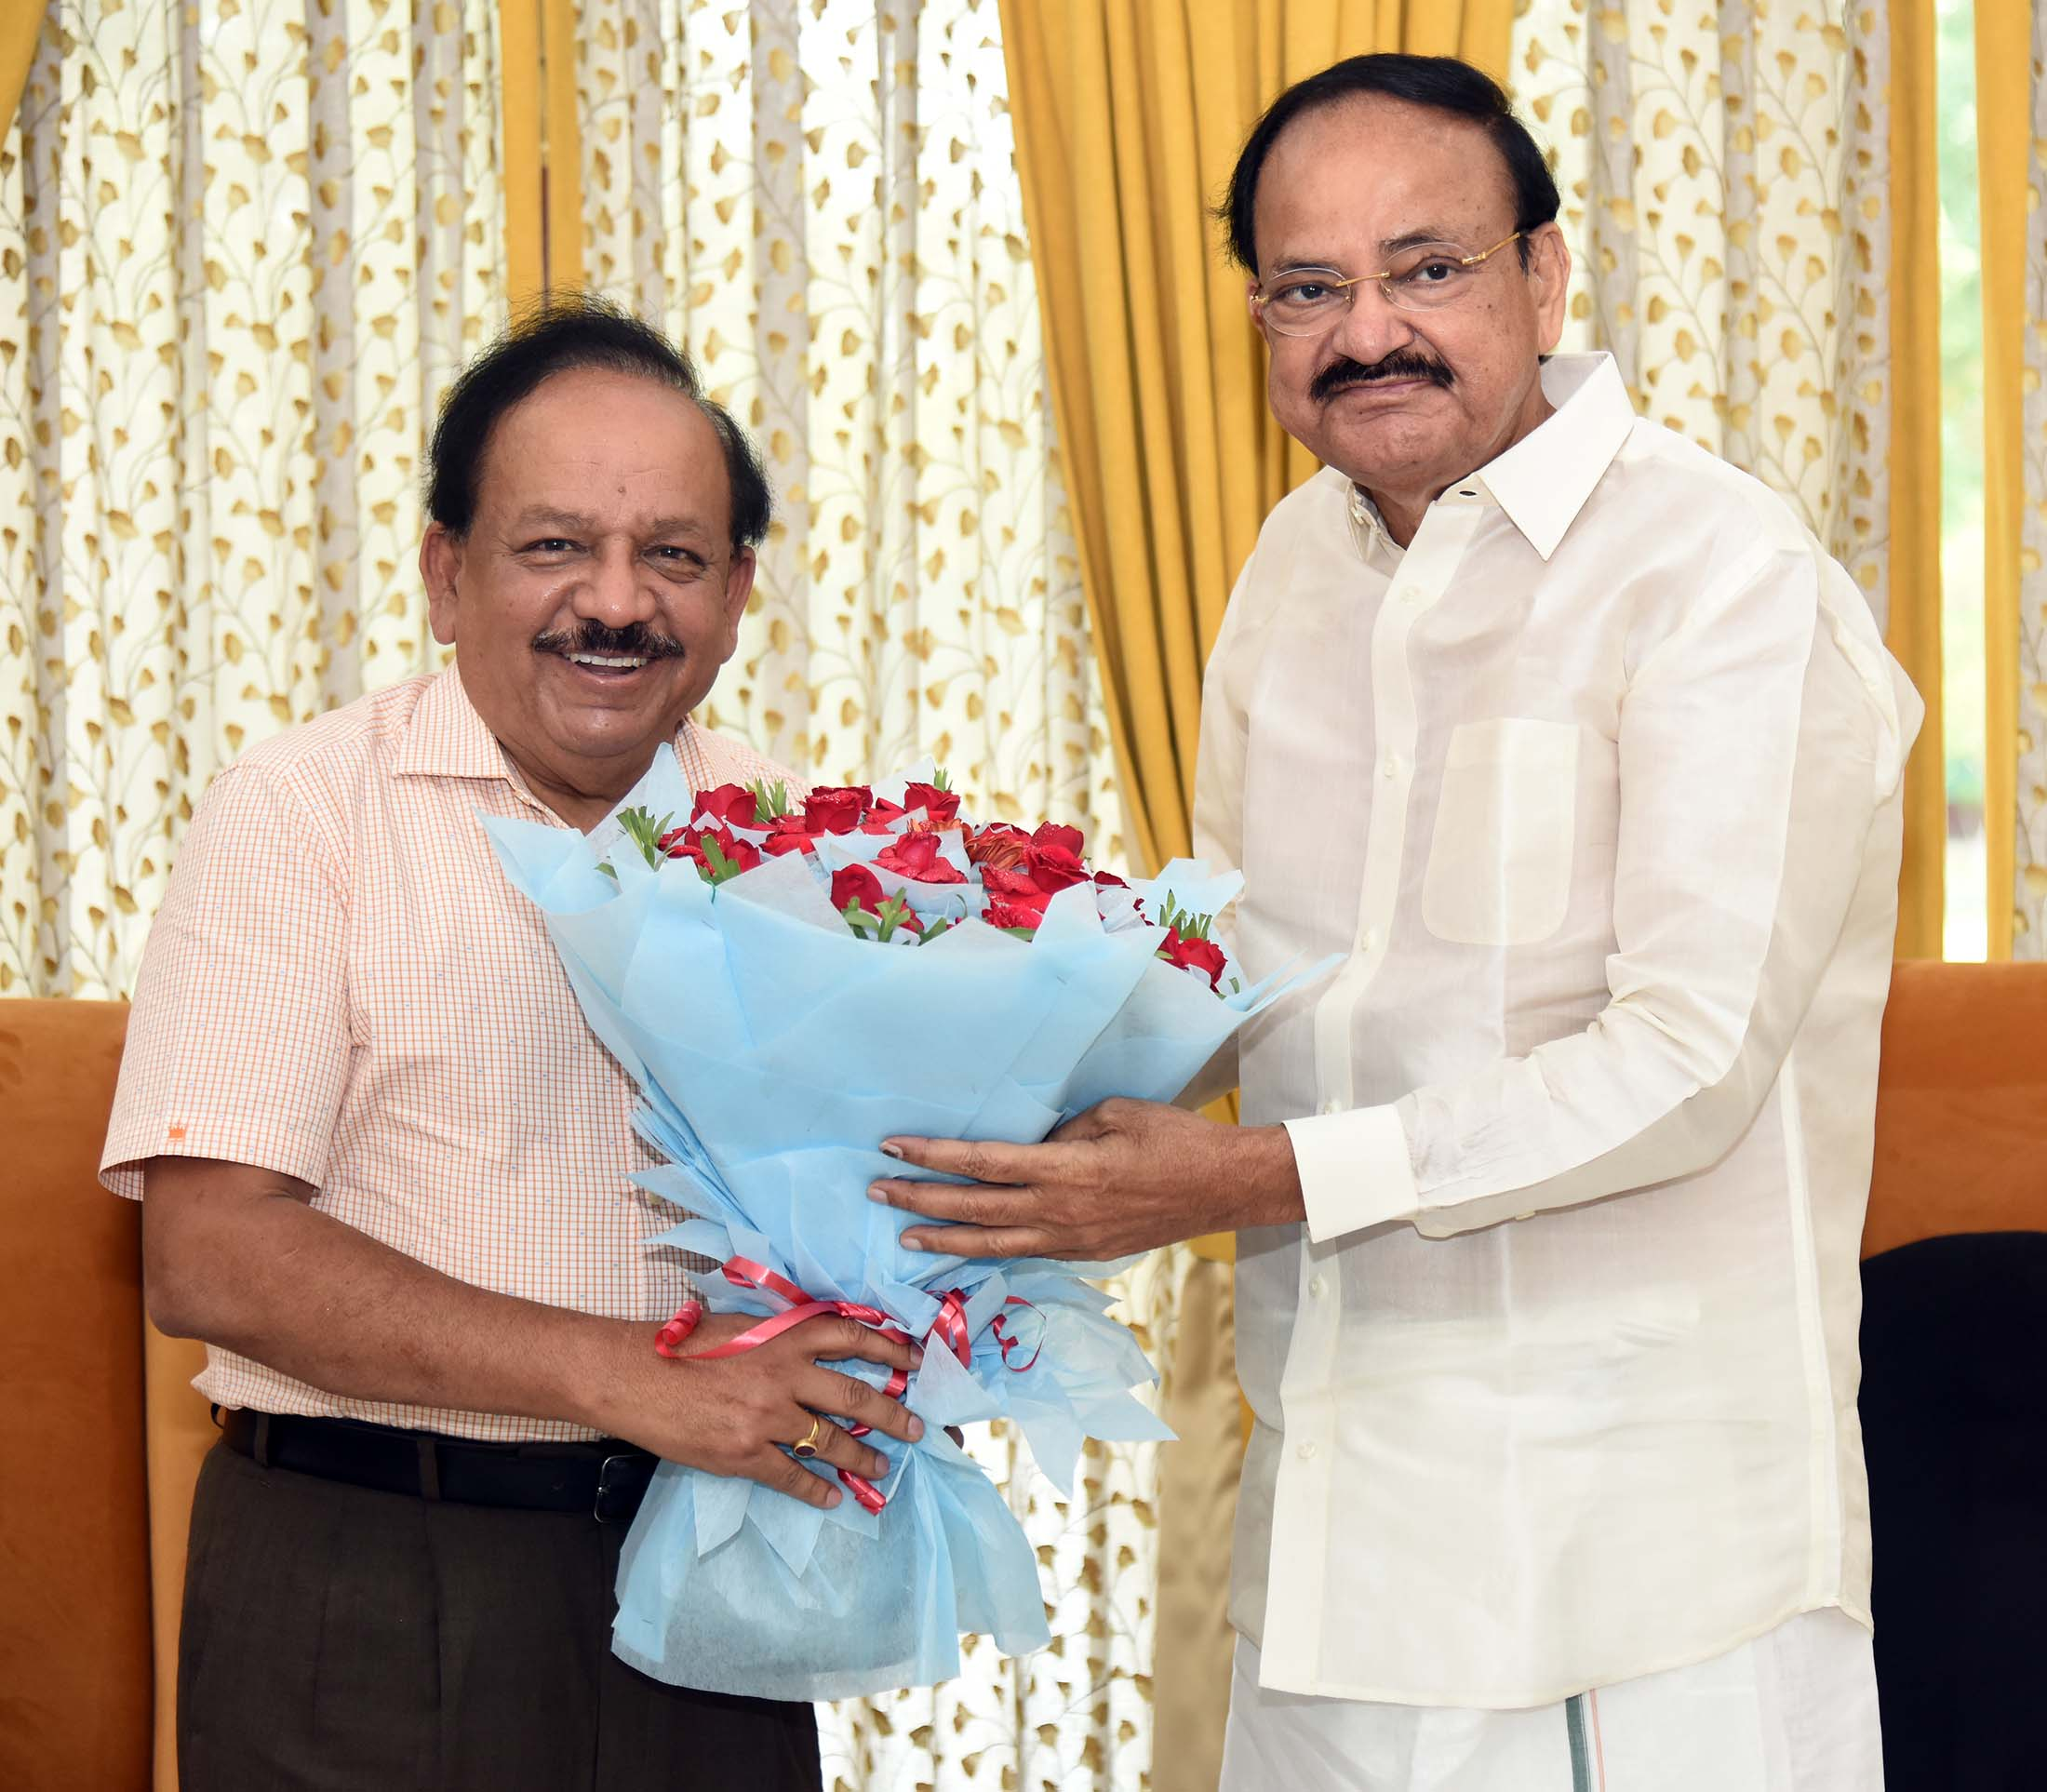 Dr. Harsh Vardhan, Minister of Health and Family Welfare, Science and Technology and Earth Sciences calling on the Vice President, Shri. M. Venkaiah Naidu in New Delhi on 22nd June 2019.